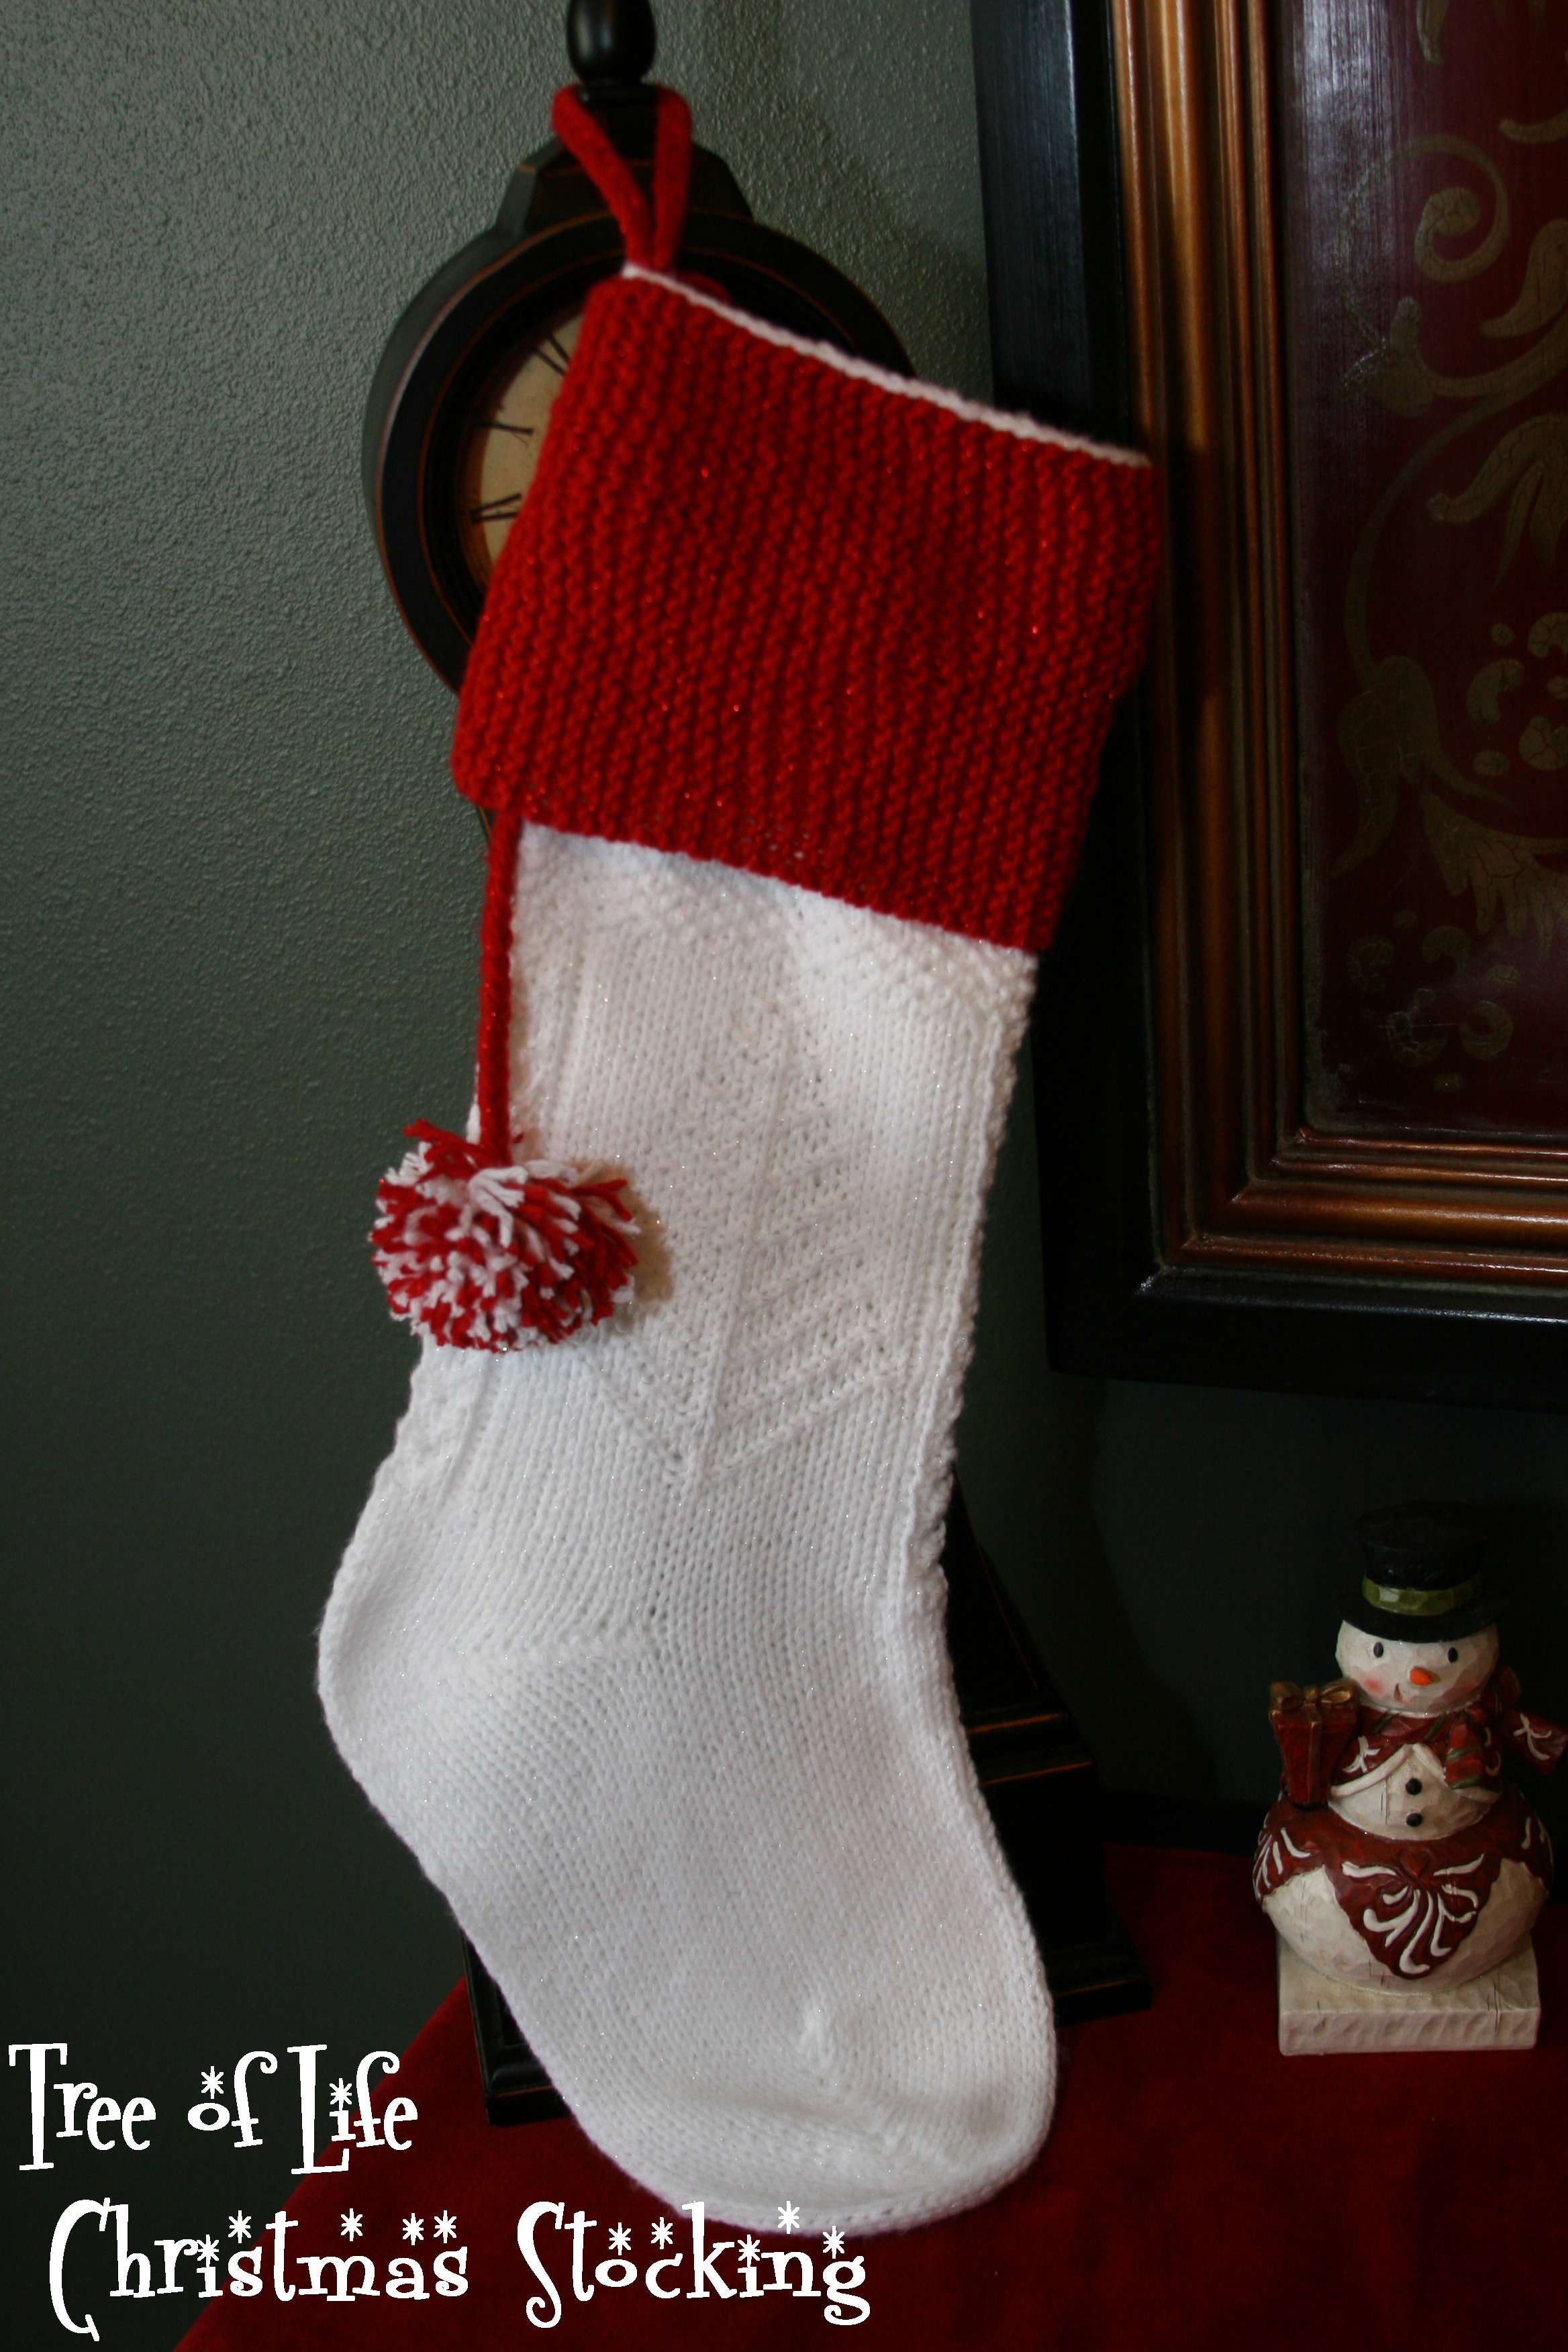 Christmas Stocking Knit Pattern : Happy Holidays!!! Christmas Stocking Pattern   Knitting Board Blog